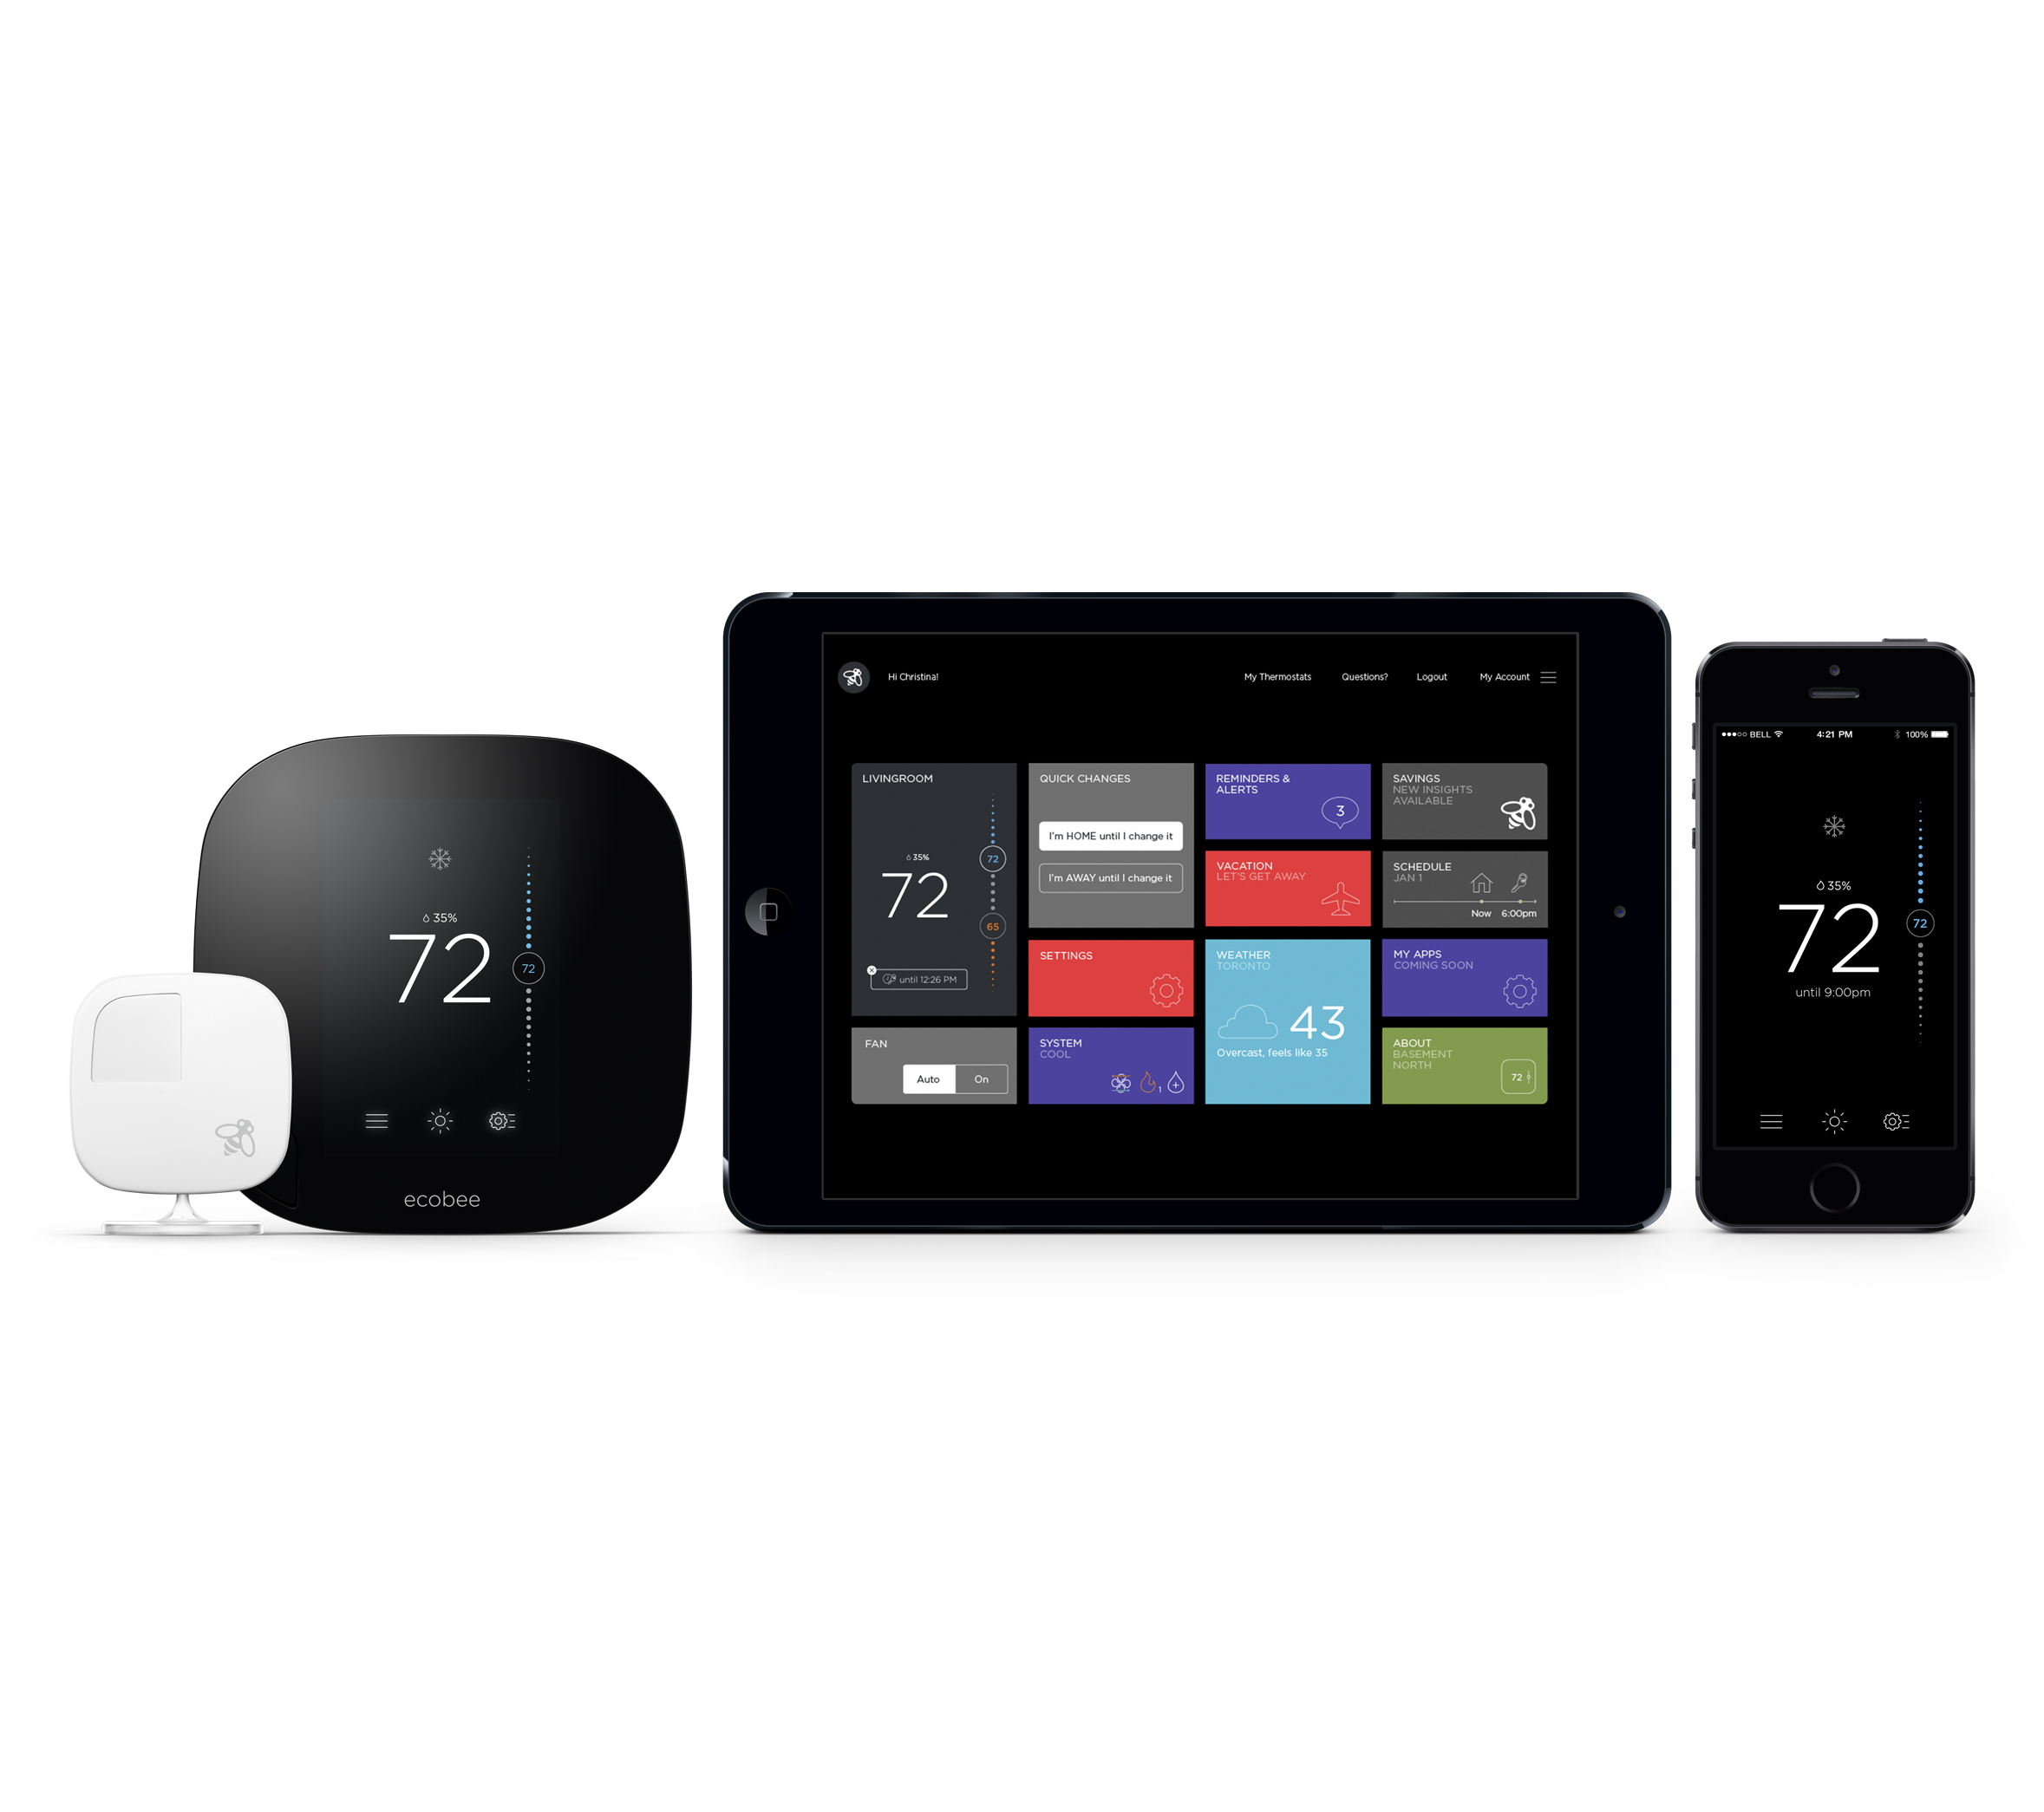 Heat Up The Savings With The Ecobee3 Smarter Wi